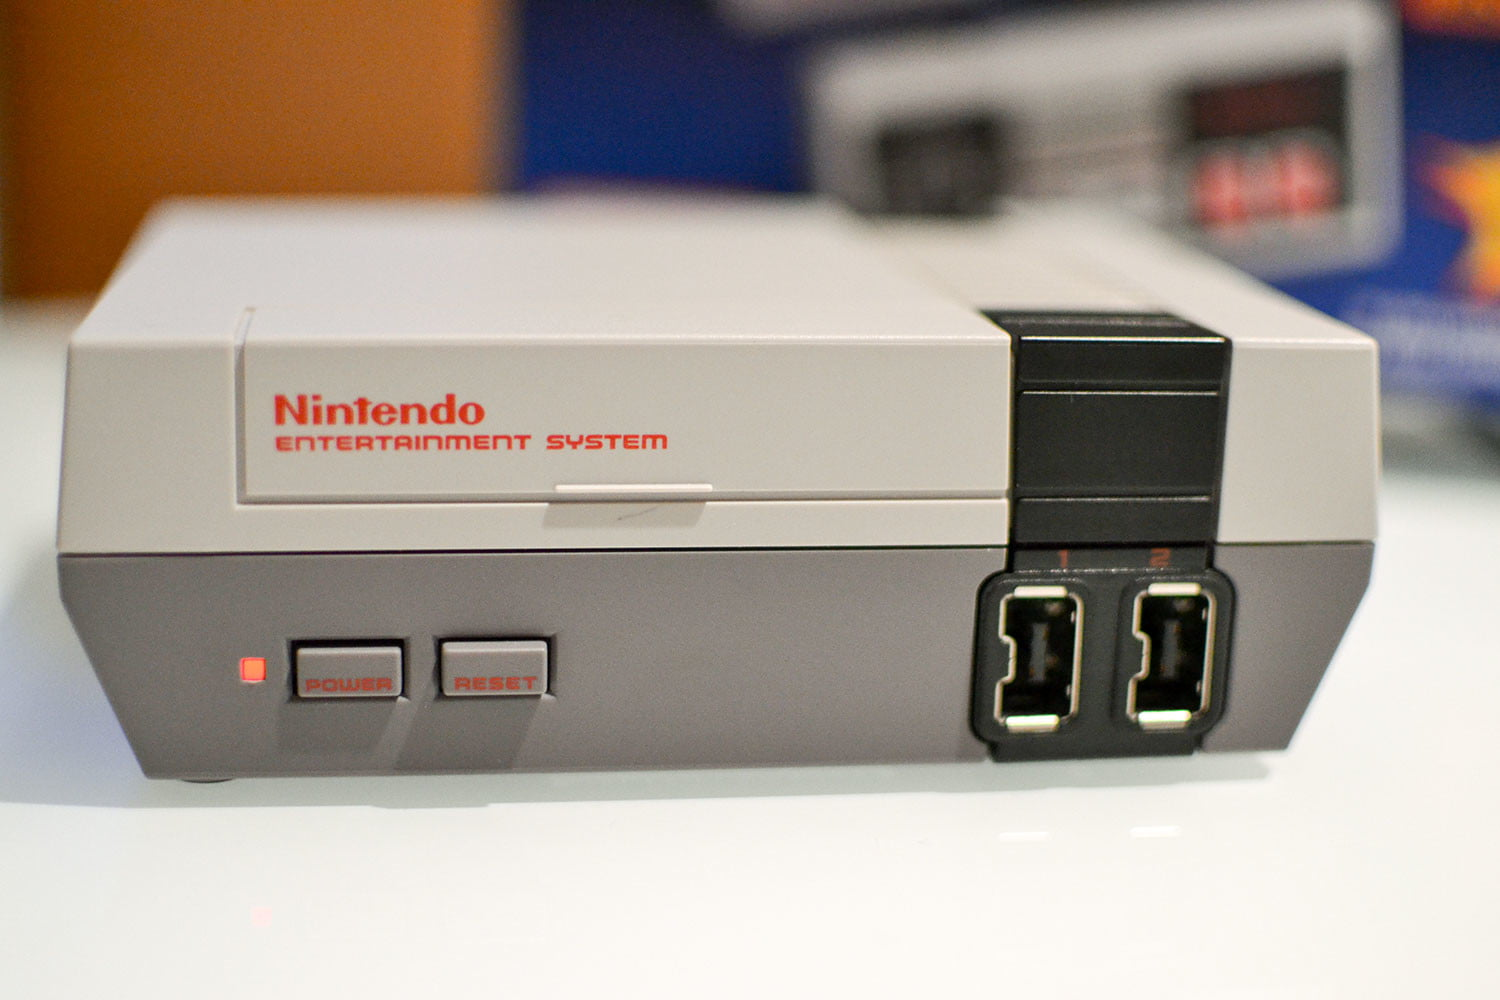 No Need To Reset Nes Classic Mod Adds Home Screen Shortcut